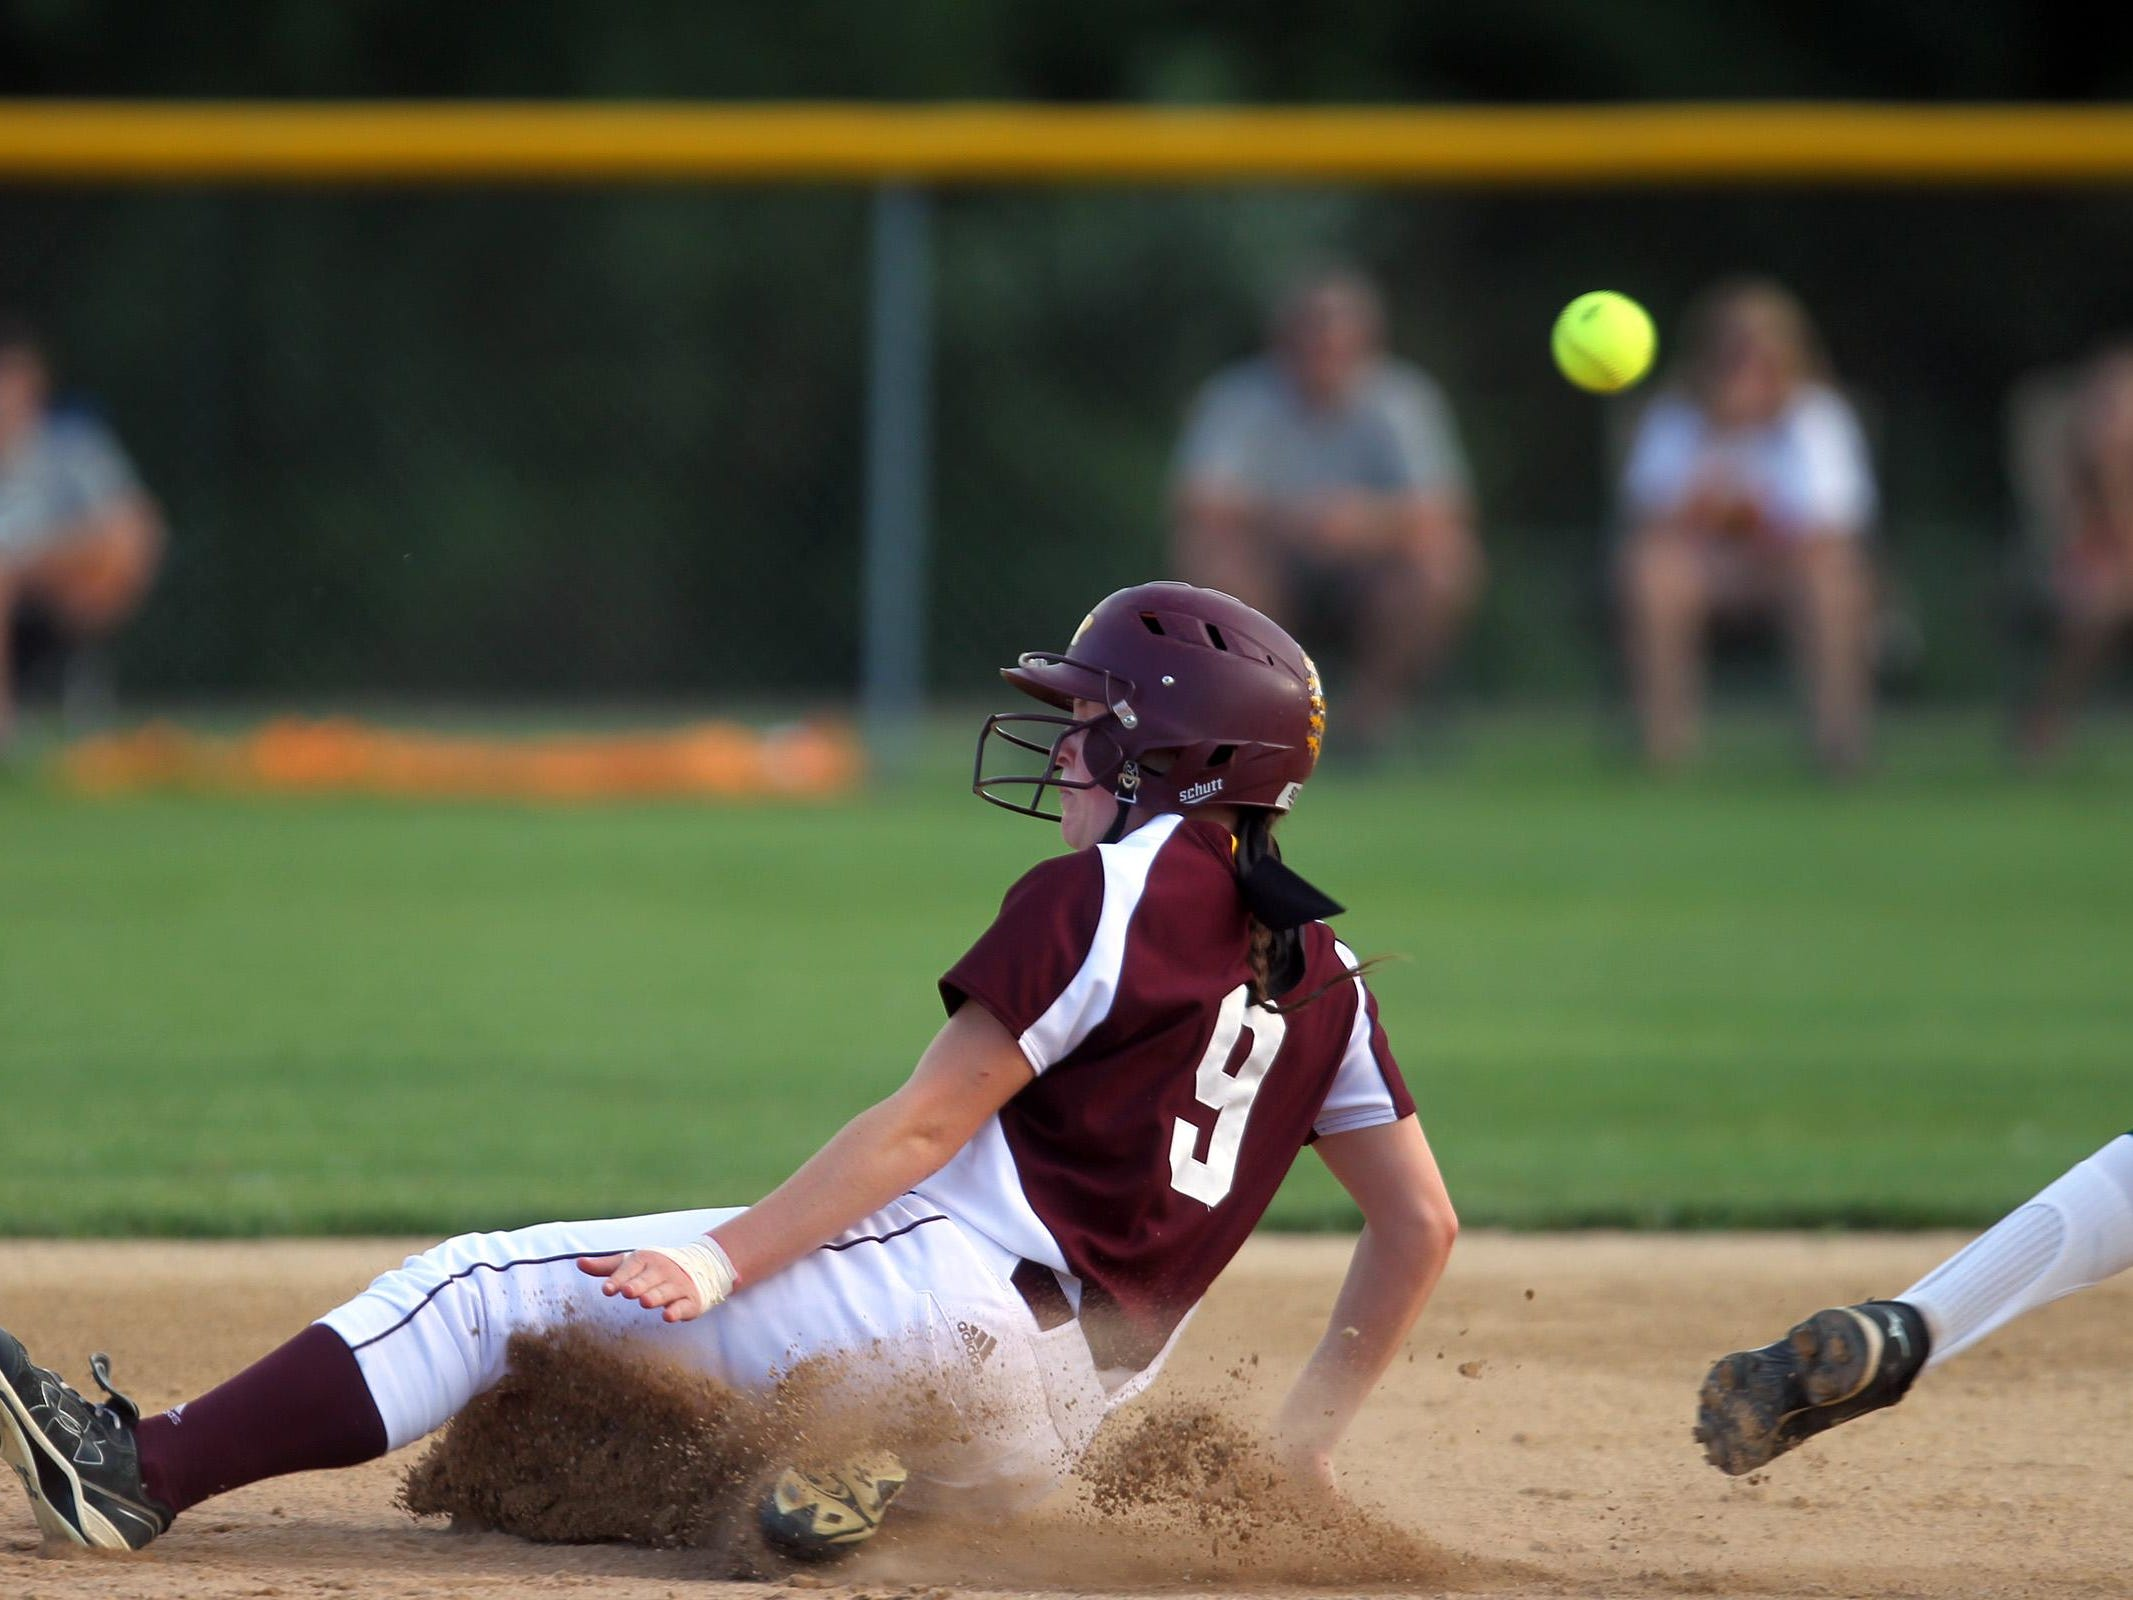 Ankeny's Olivia Brooks safely slides to second base during the Hawkettes' Class 5A regional championship game at West High on Tuesday, July 14, 2015. Ankeny won, 3-1, to head to state. David Scrivner / Iowa City Press-Citizen